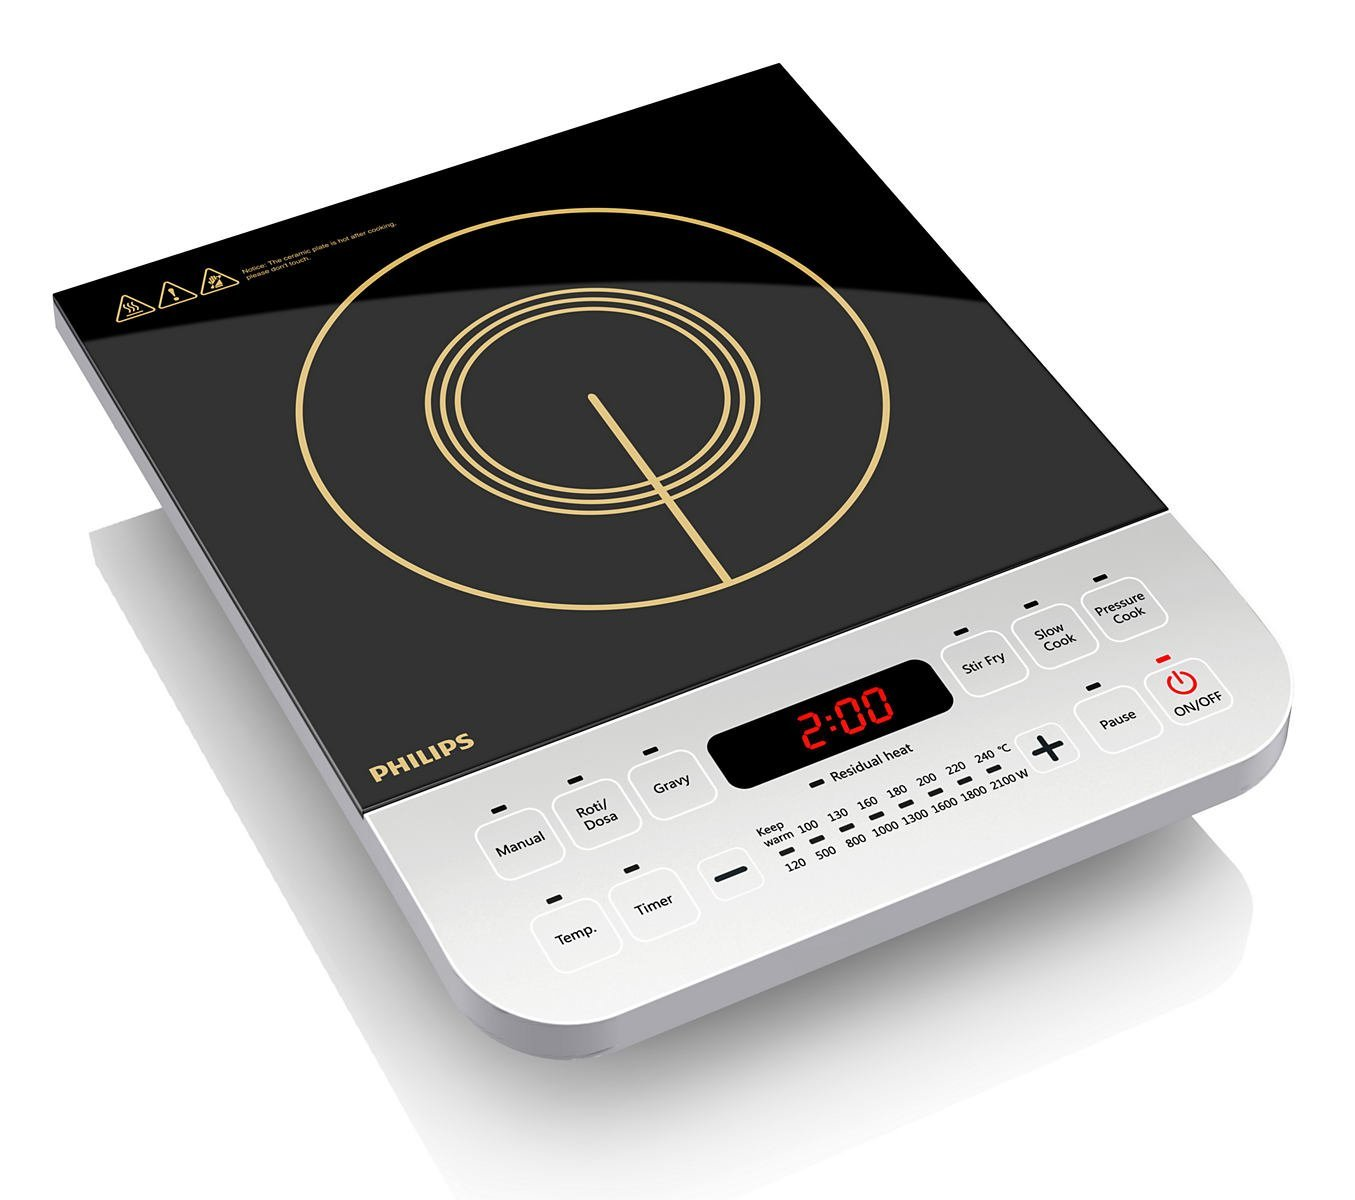 Amazon- Philips Viva Collection HD4928 2100-Watt Induction Cooktop (Black) at just Rs. 2179 only